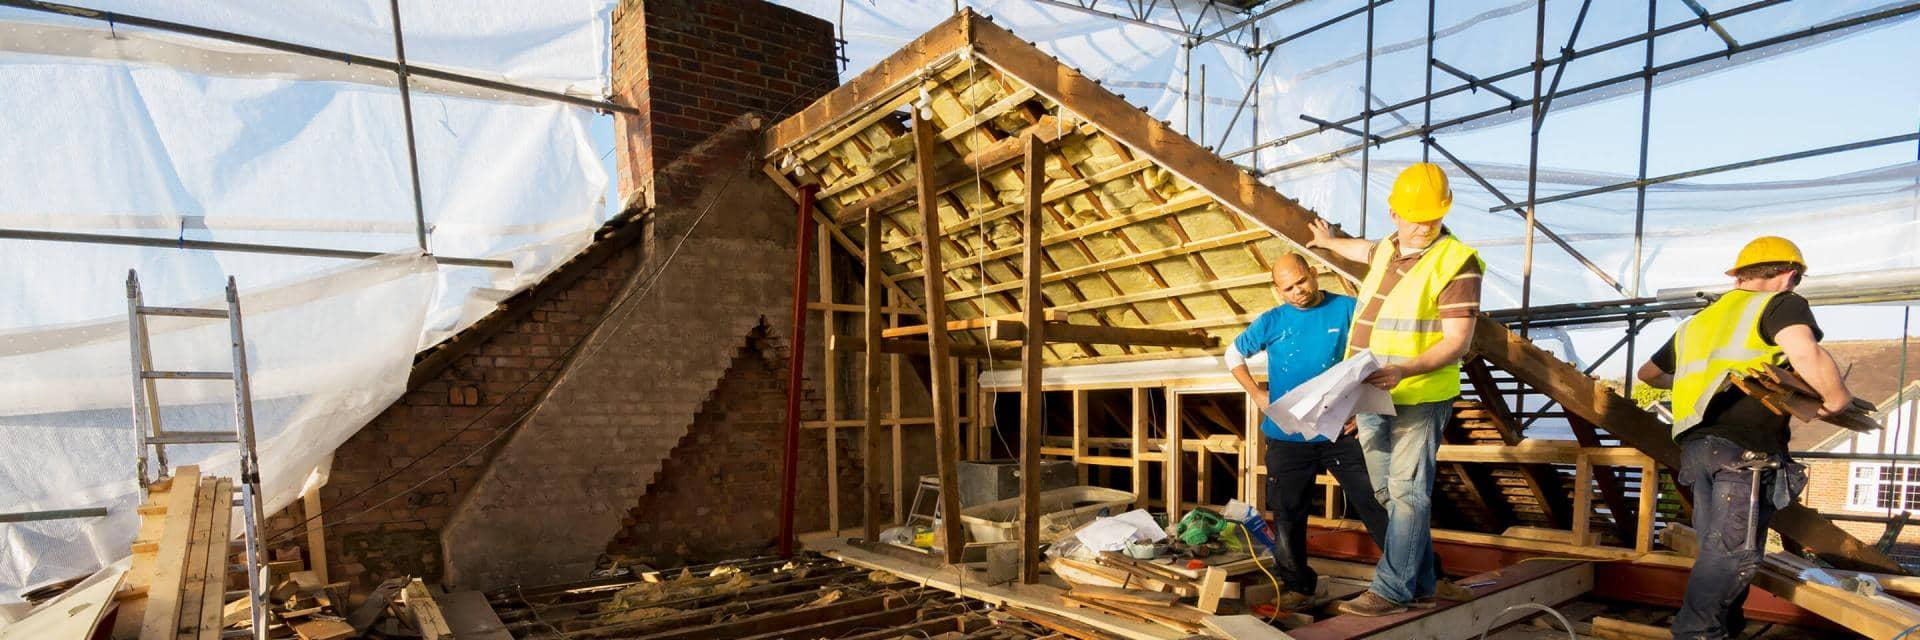 House Renovation Costs Barclays